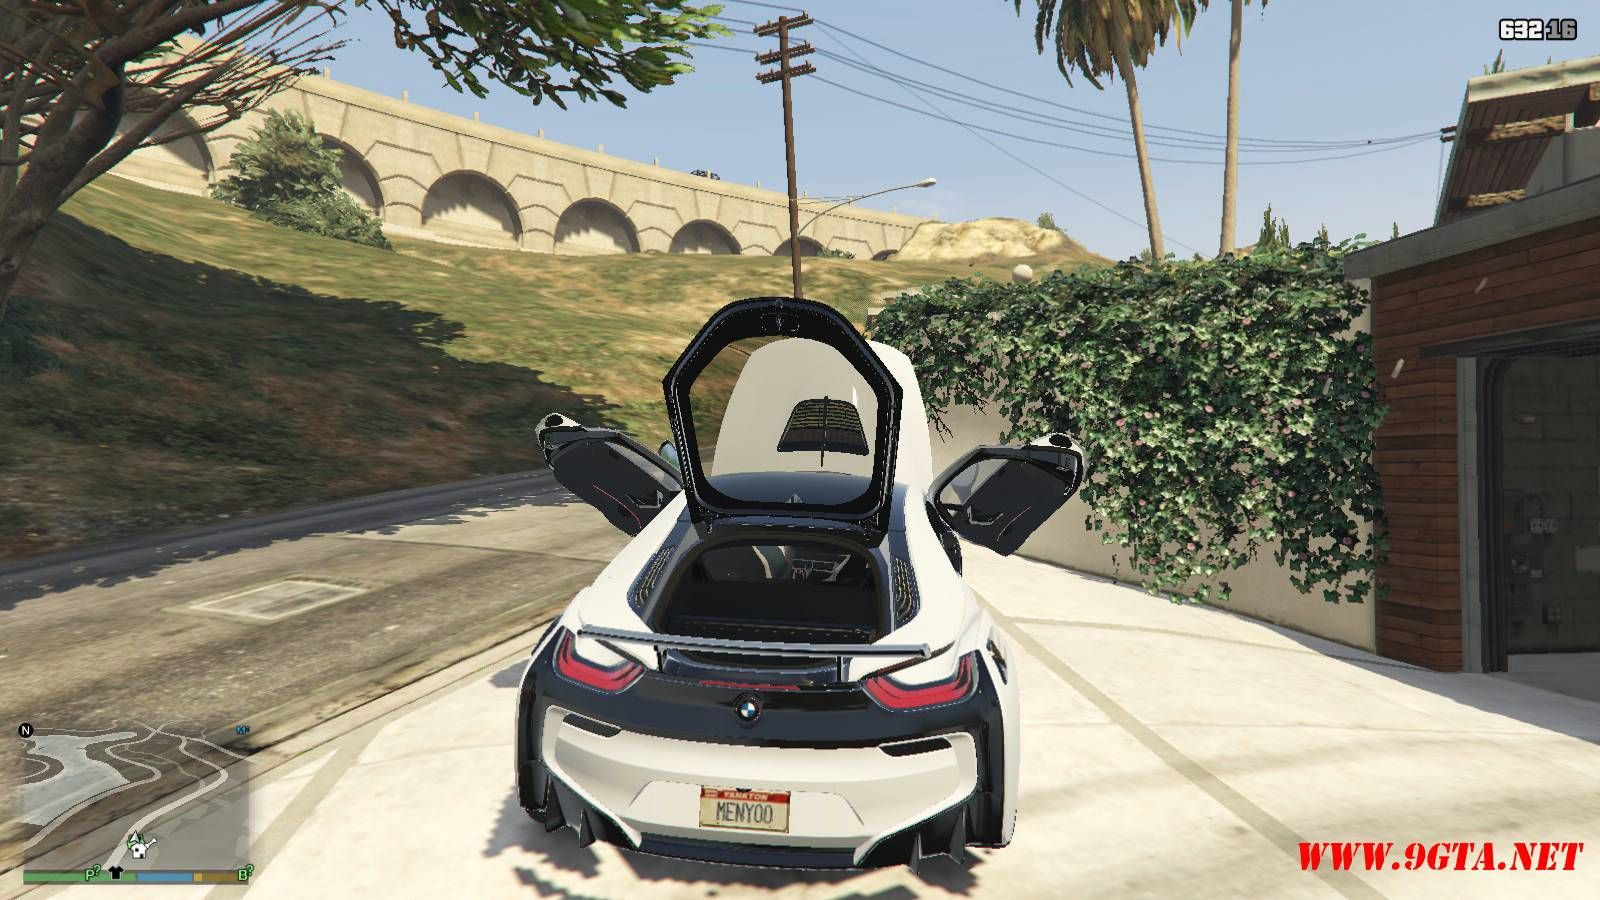 BMW i8 AC Schinitzer ACS8 Mod For GTA5 (15)